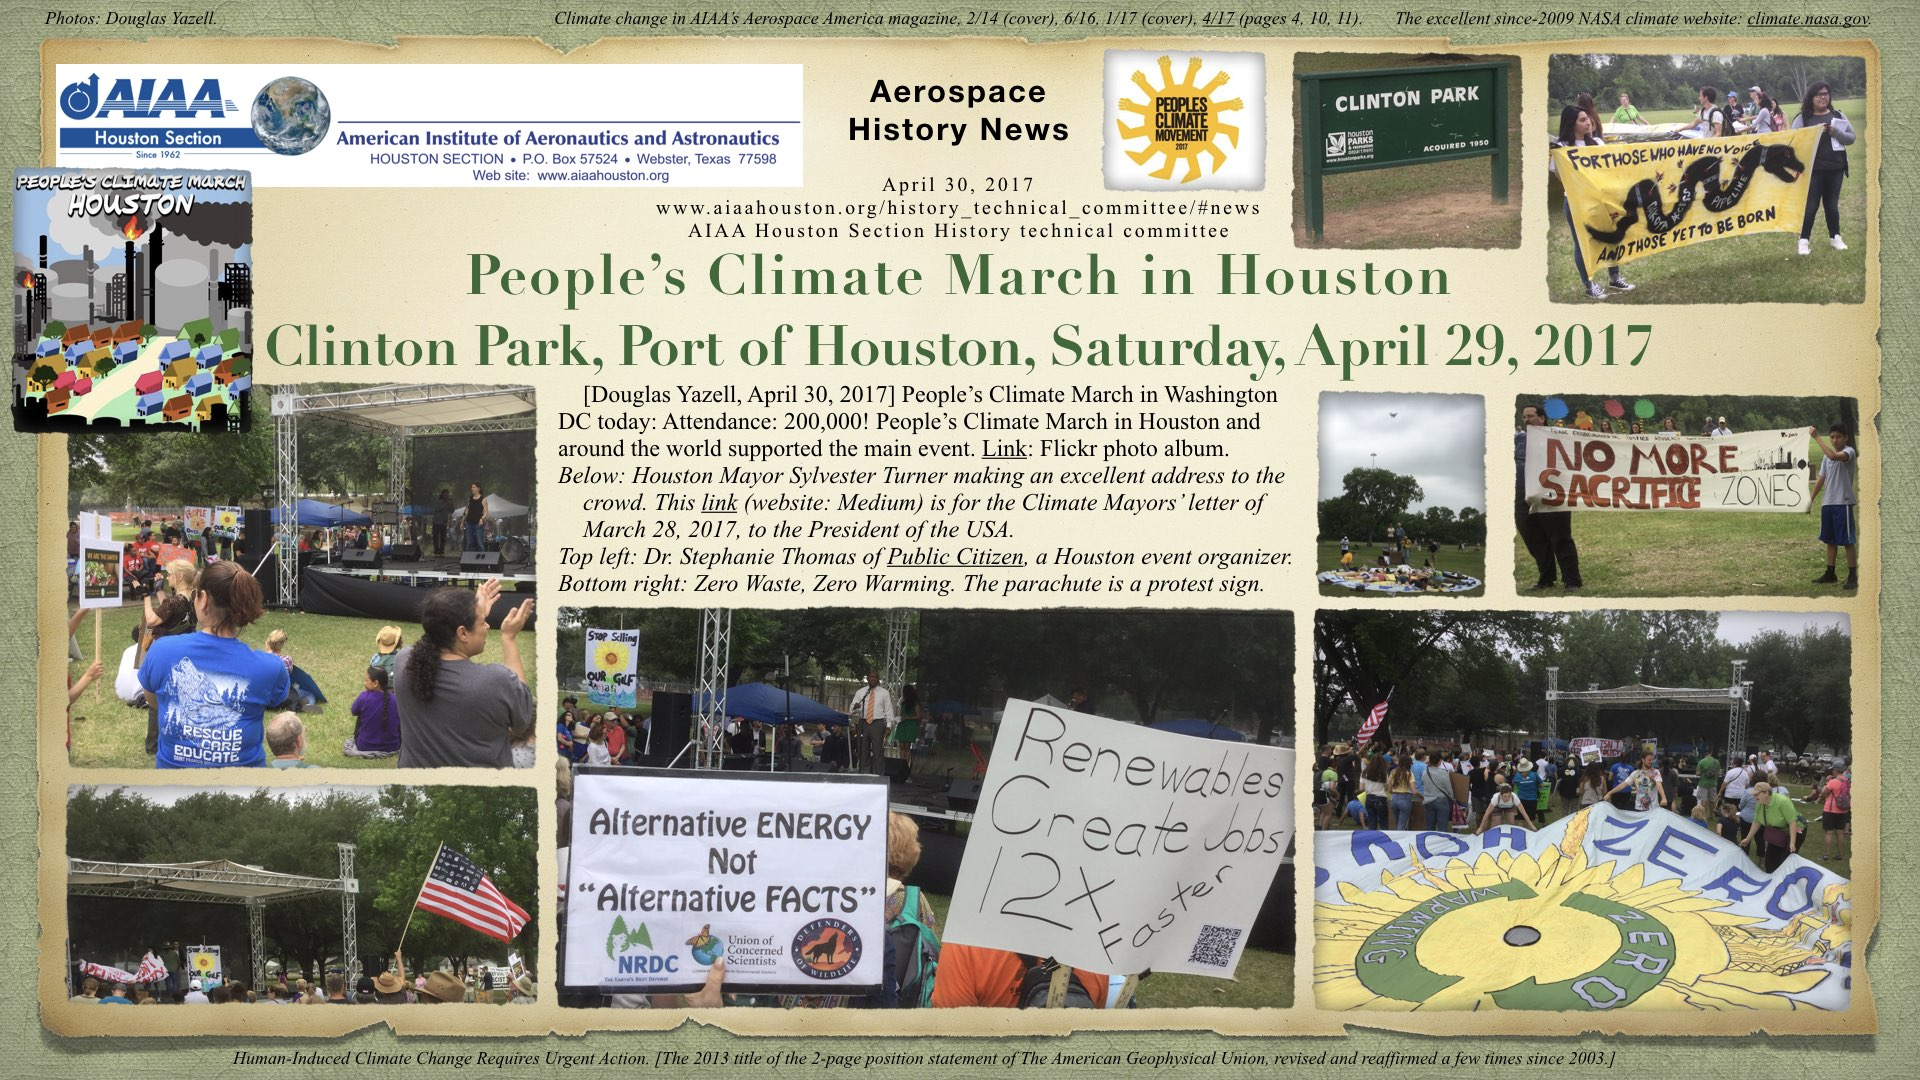 Above: People's Climate March in Houston, Clinton Park, Port of Houston, Saturday, April 29, 2017. (Click to zoom.)